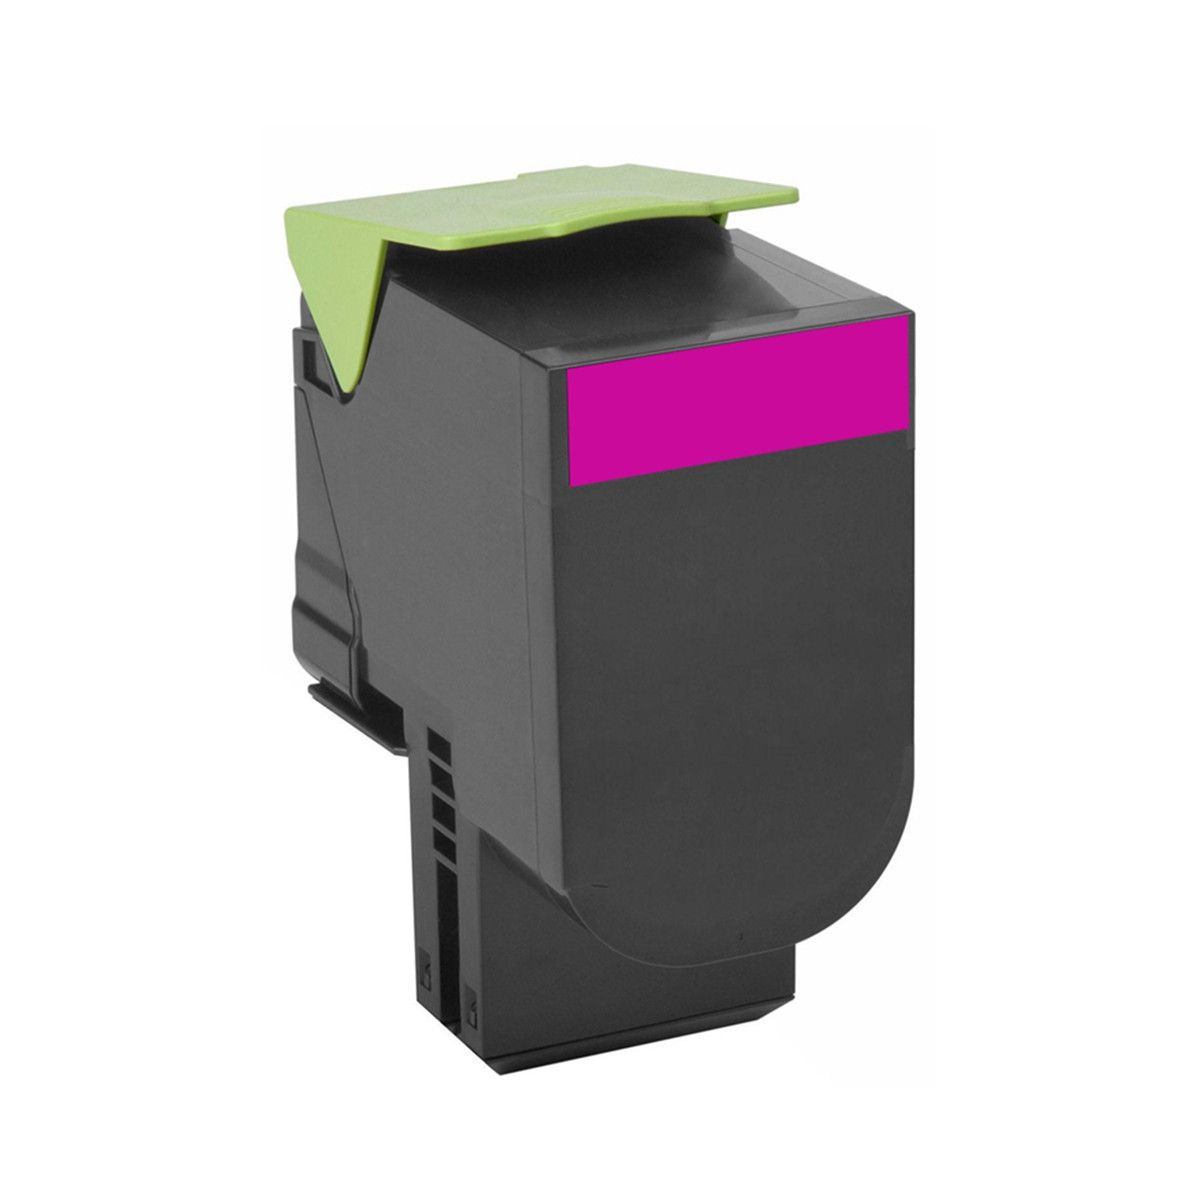 KIT 03 TONERS COMPATÍVEIS COM LEXMARK [CX417de, CS417]  Black, Magenta e Yellow - Cartucho & Cia